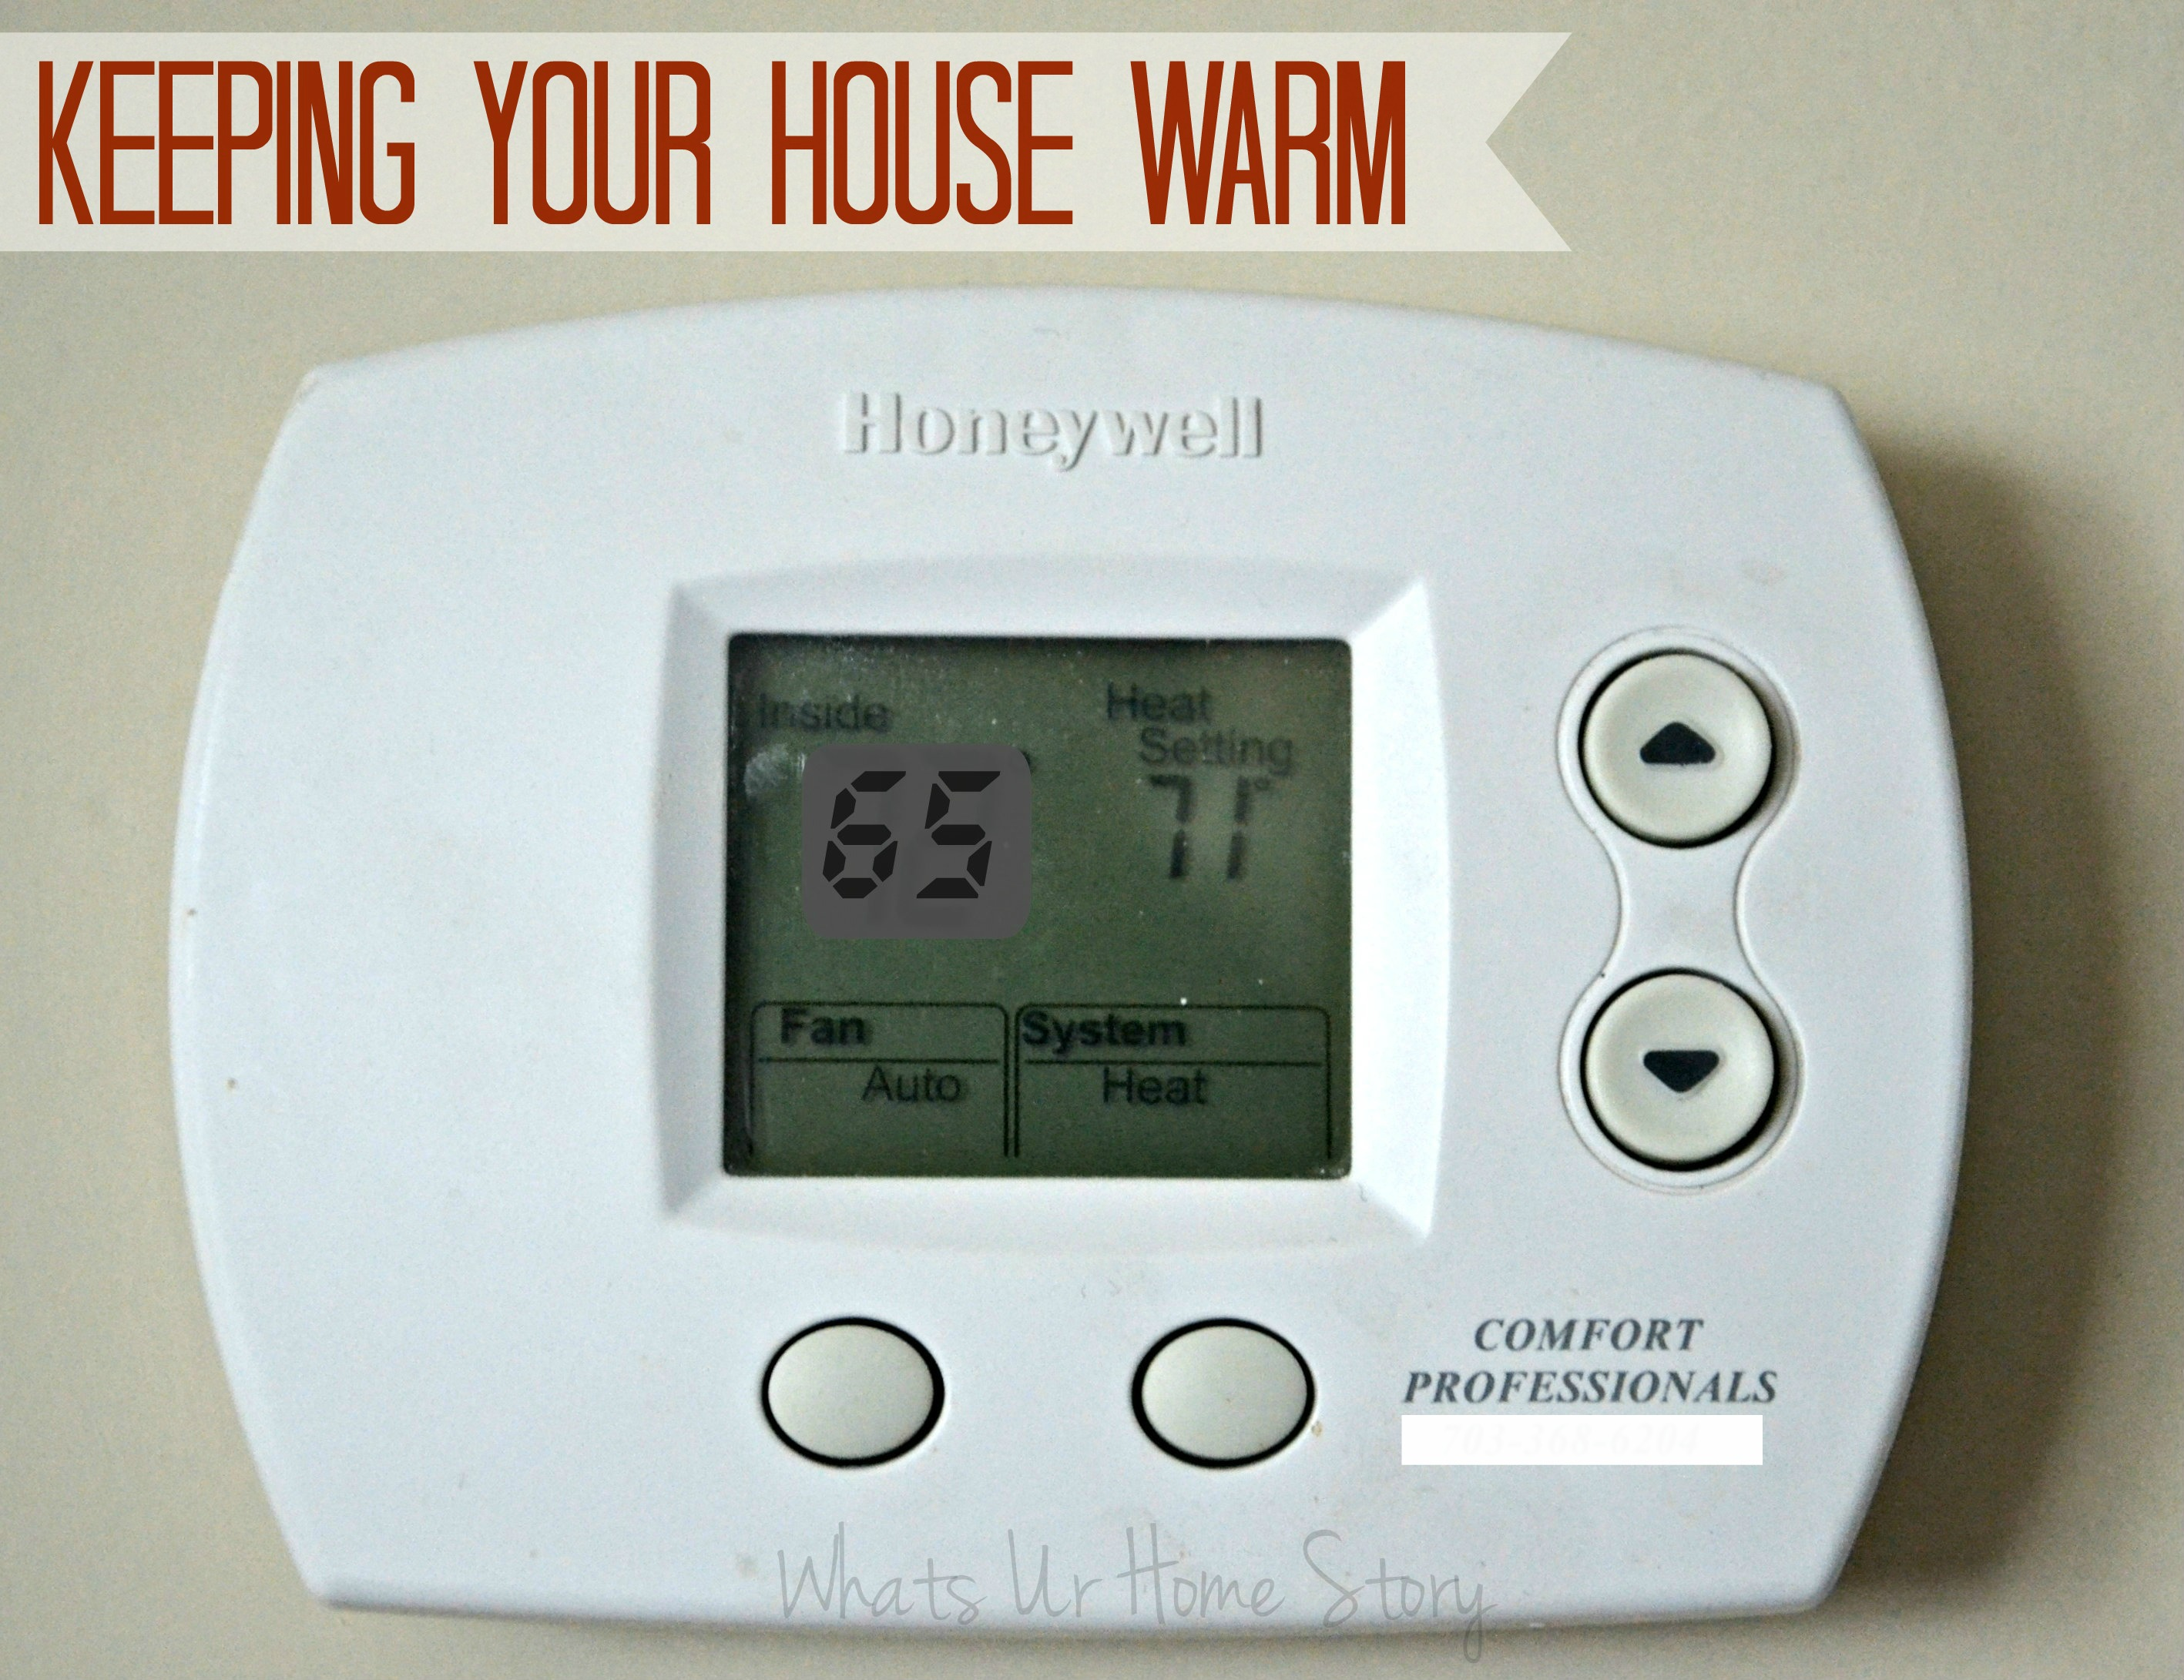 Tips to keep your home warm this winter,